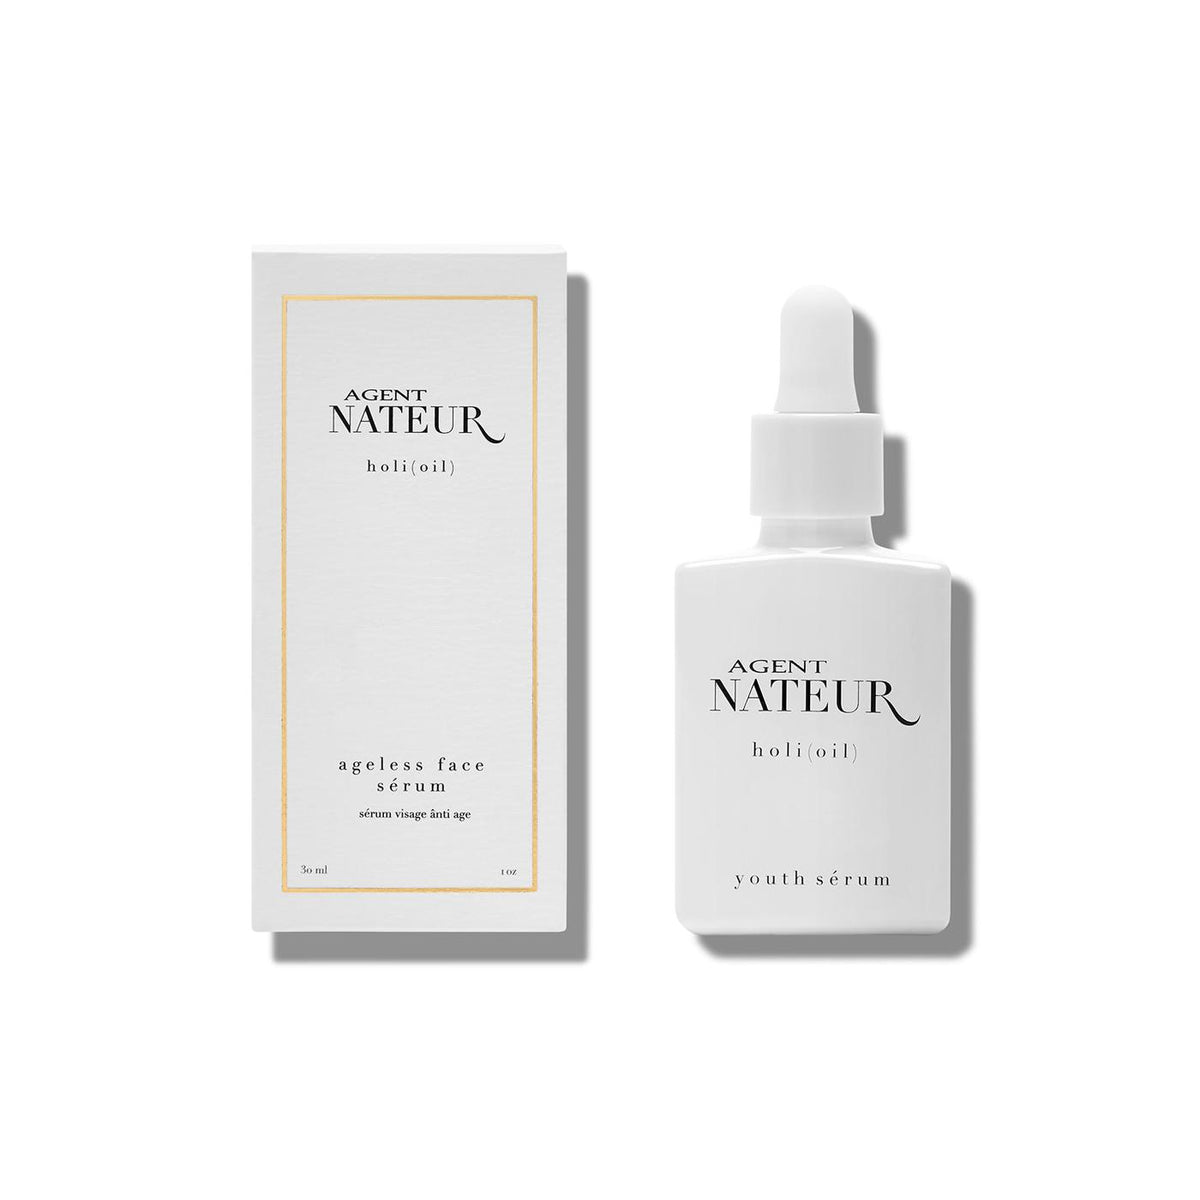 agent nateur | H O L I ( O I L ) refining ageless face serum - KISS AND MAKEUP